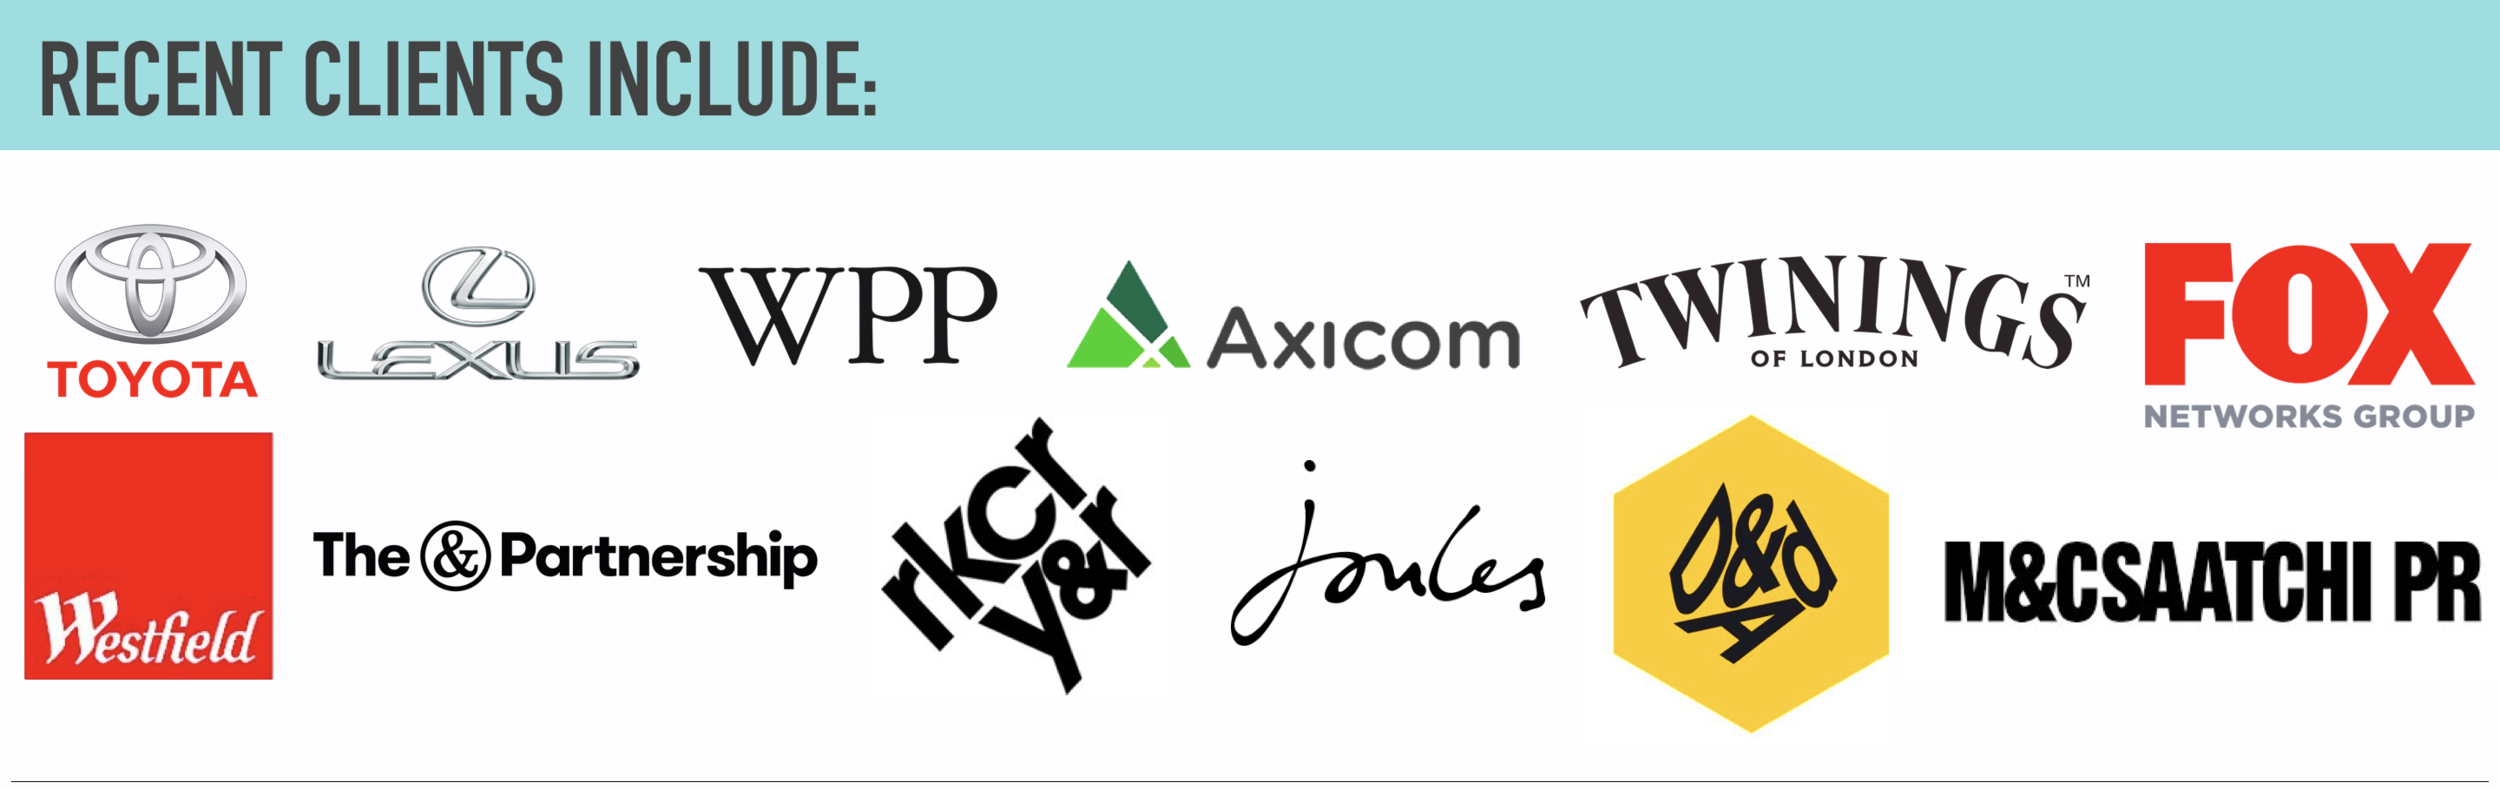 Leading left clients, toyota, lexus, WPP, axicom, twinnings, FOX, westfield, the & partnership, rckr y&r, joules, D&AD, M&C Saatchi 2.png